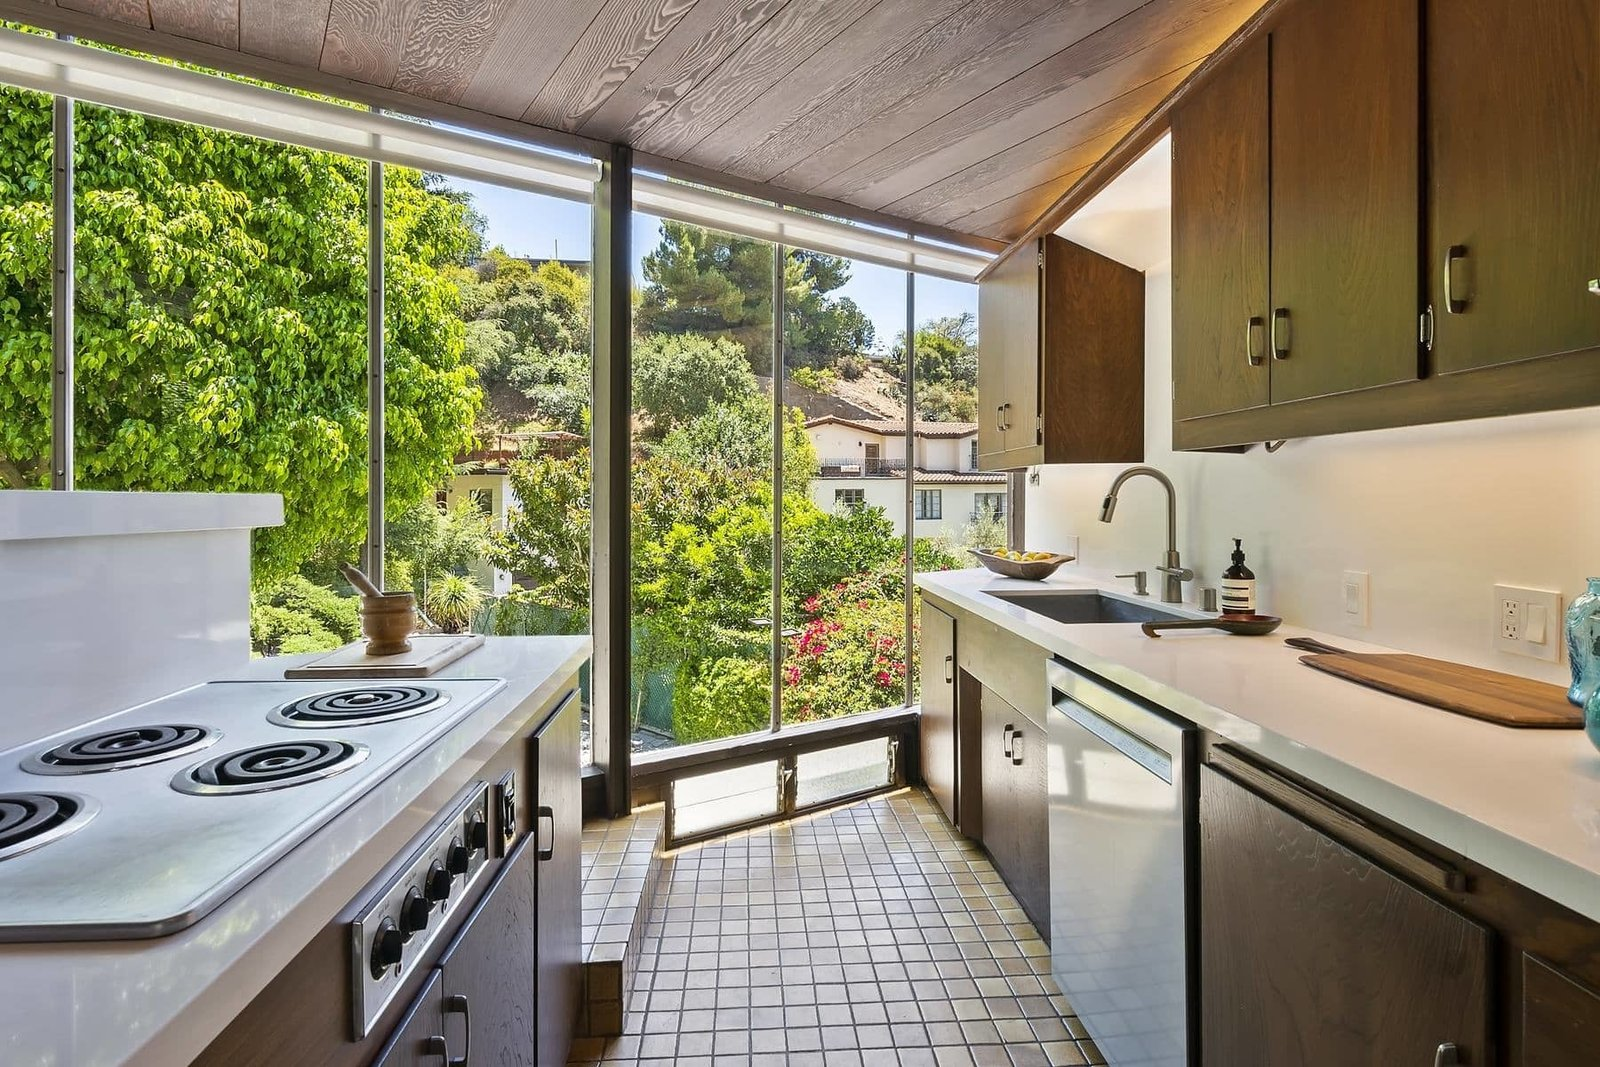 The kitchen features the original cabinetry, tile floors, and Frigidare cooktop and oven. All other appliances, along with the countertops and fixtures have been modernized.  Photo 8 of 15 in A John Lautner Post-and-Beam Hits the Market for the First Time Ever